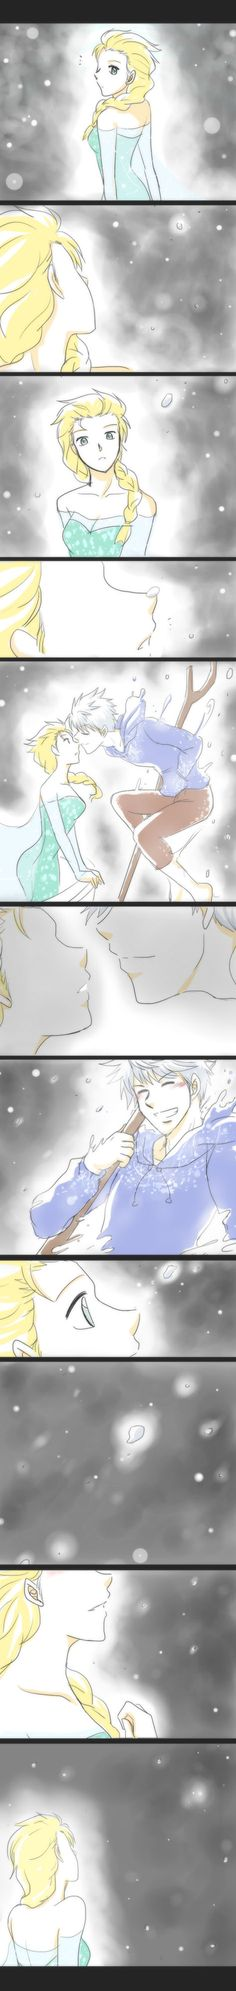 Little Snow by Tc-Chan on deviantART